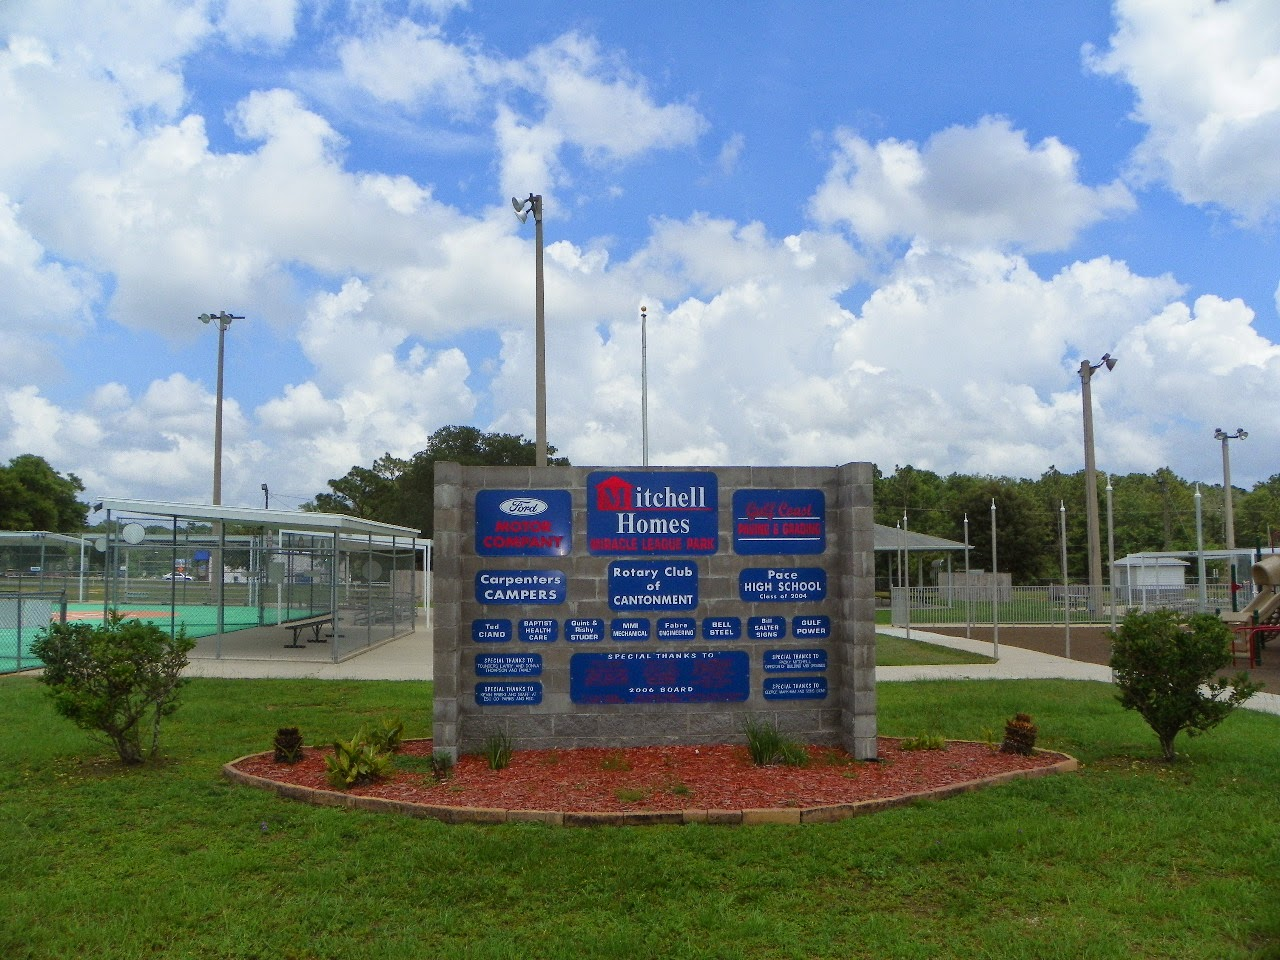 Miracle League Park Pensacola, FL